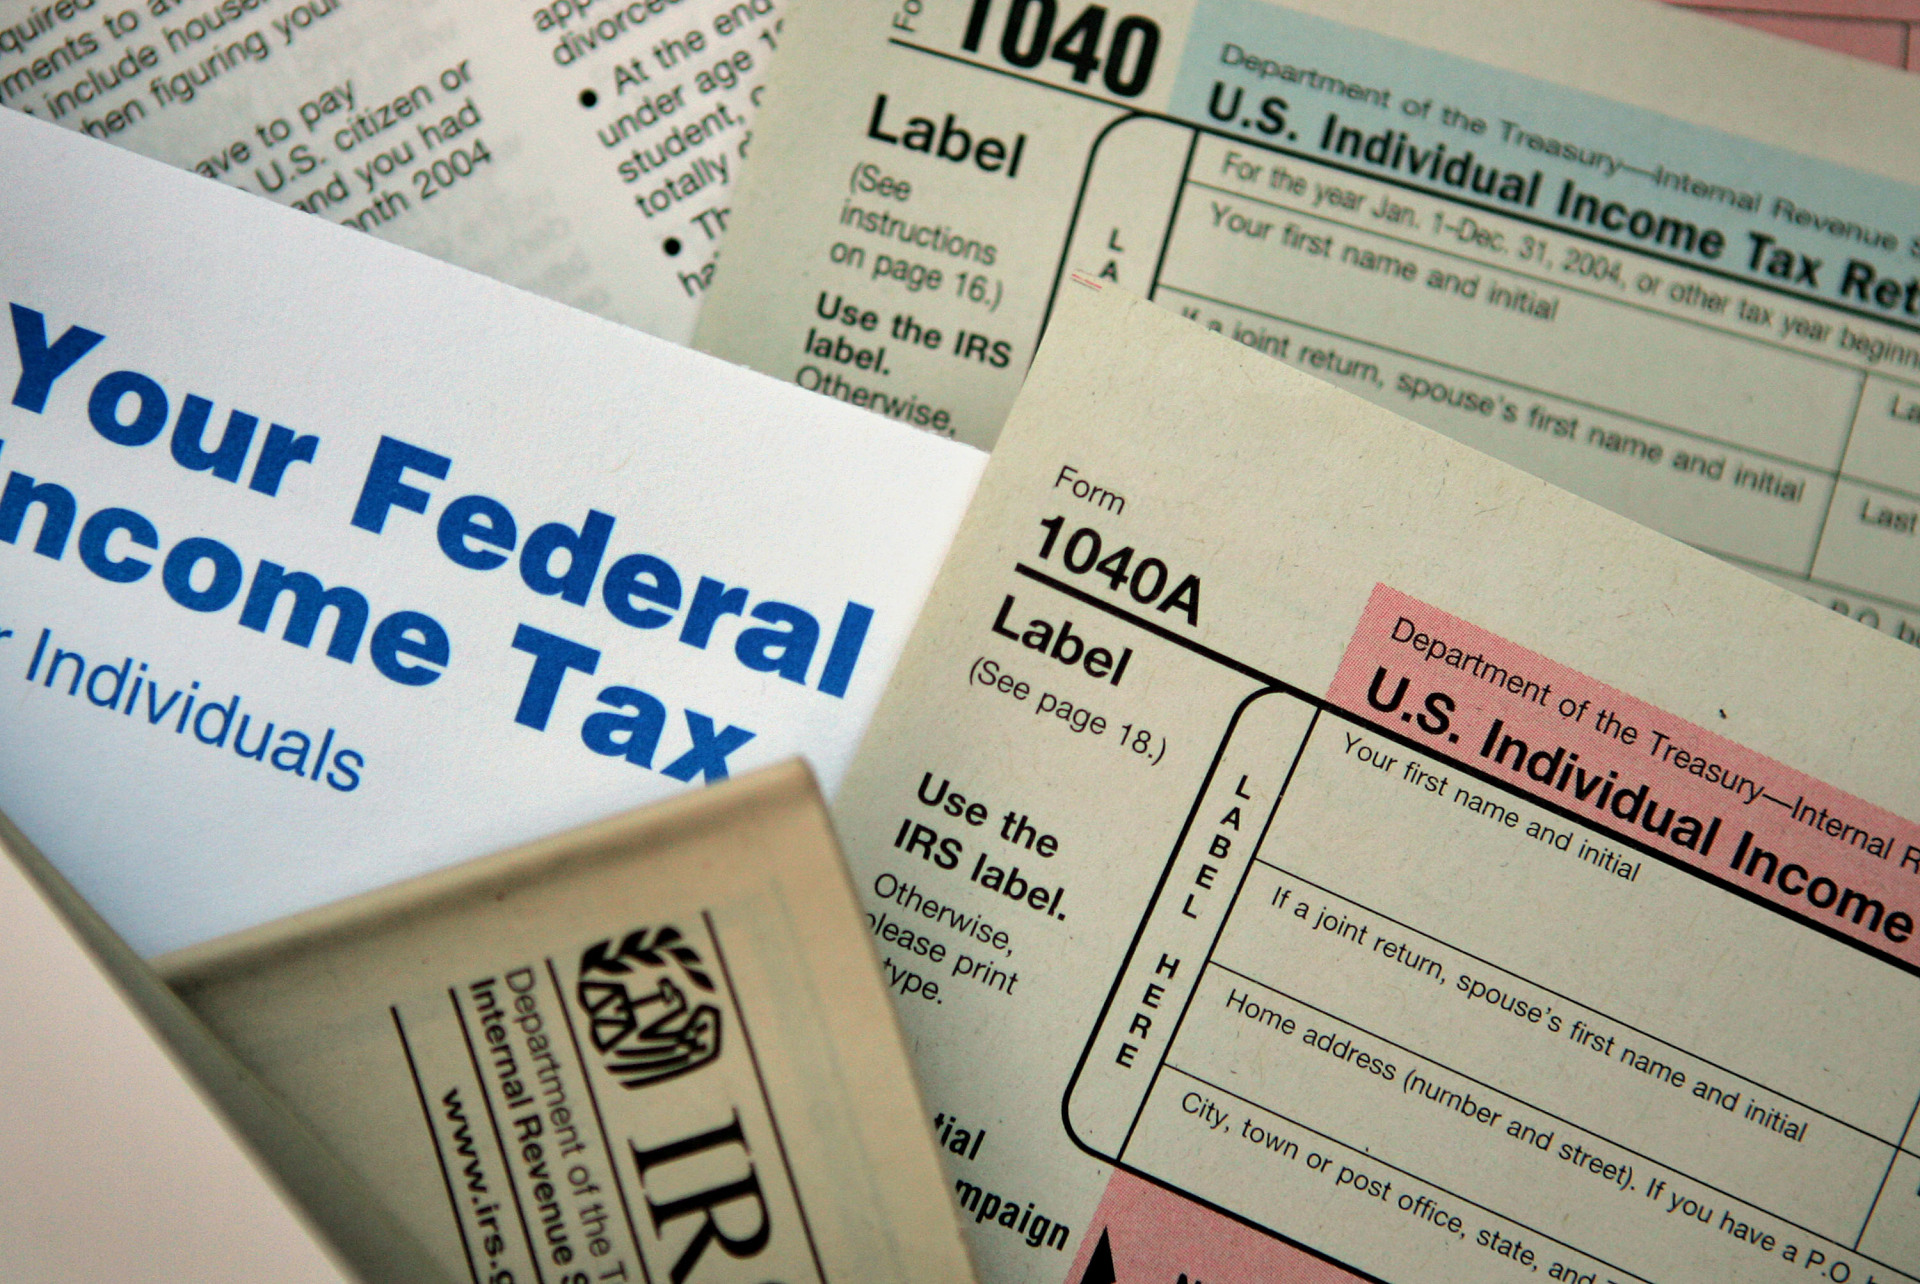 Current federal tax forms are distributed at the offices of the Internal Revenue Service